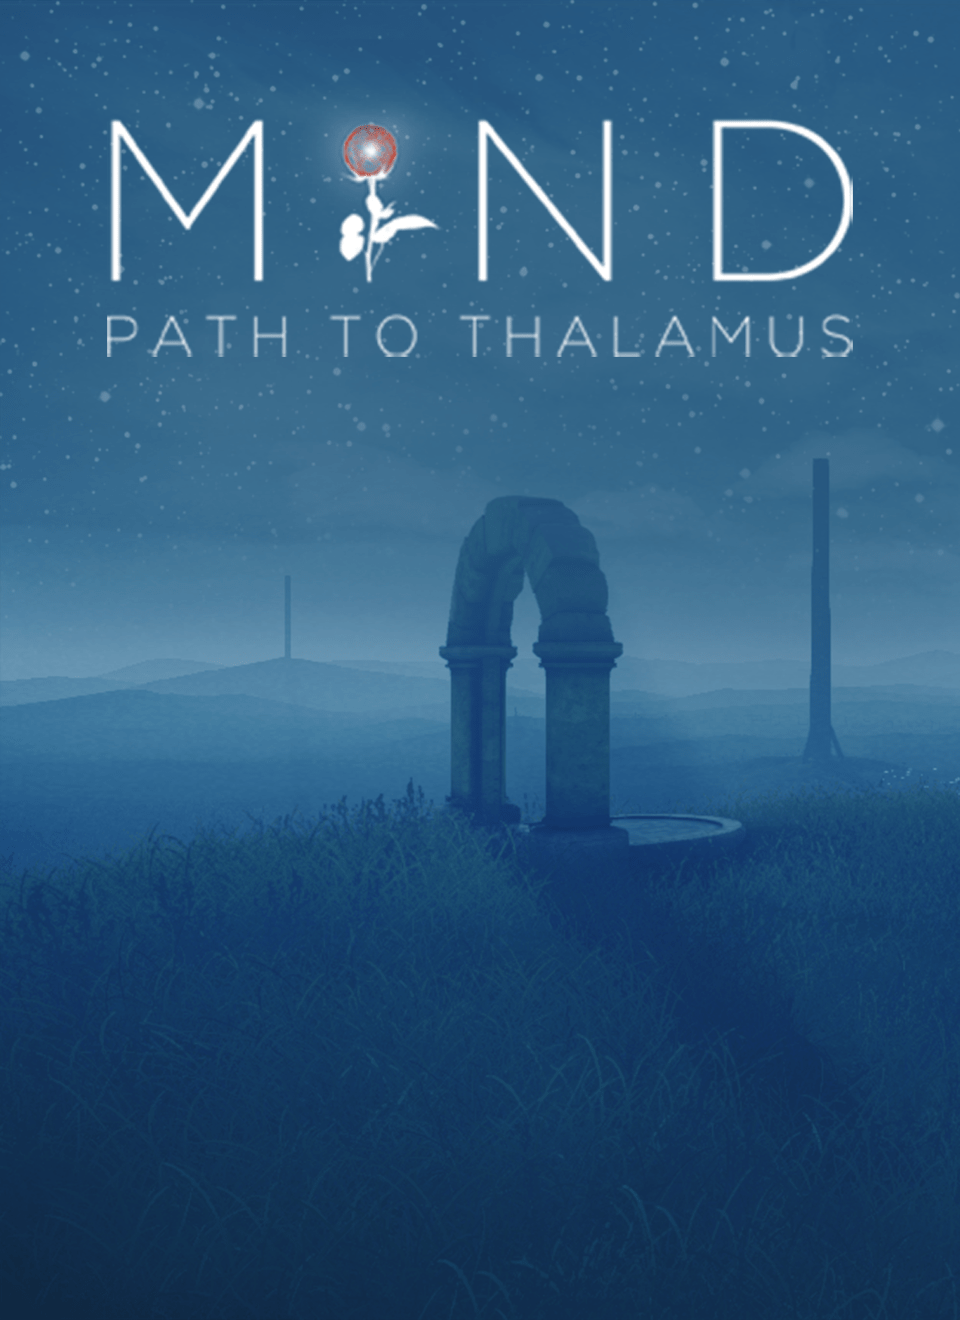 mind-path-to-thalamus_621103f1